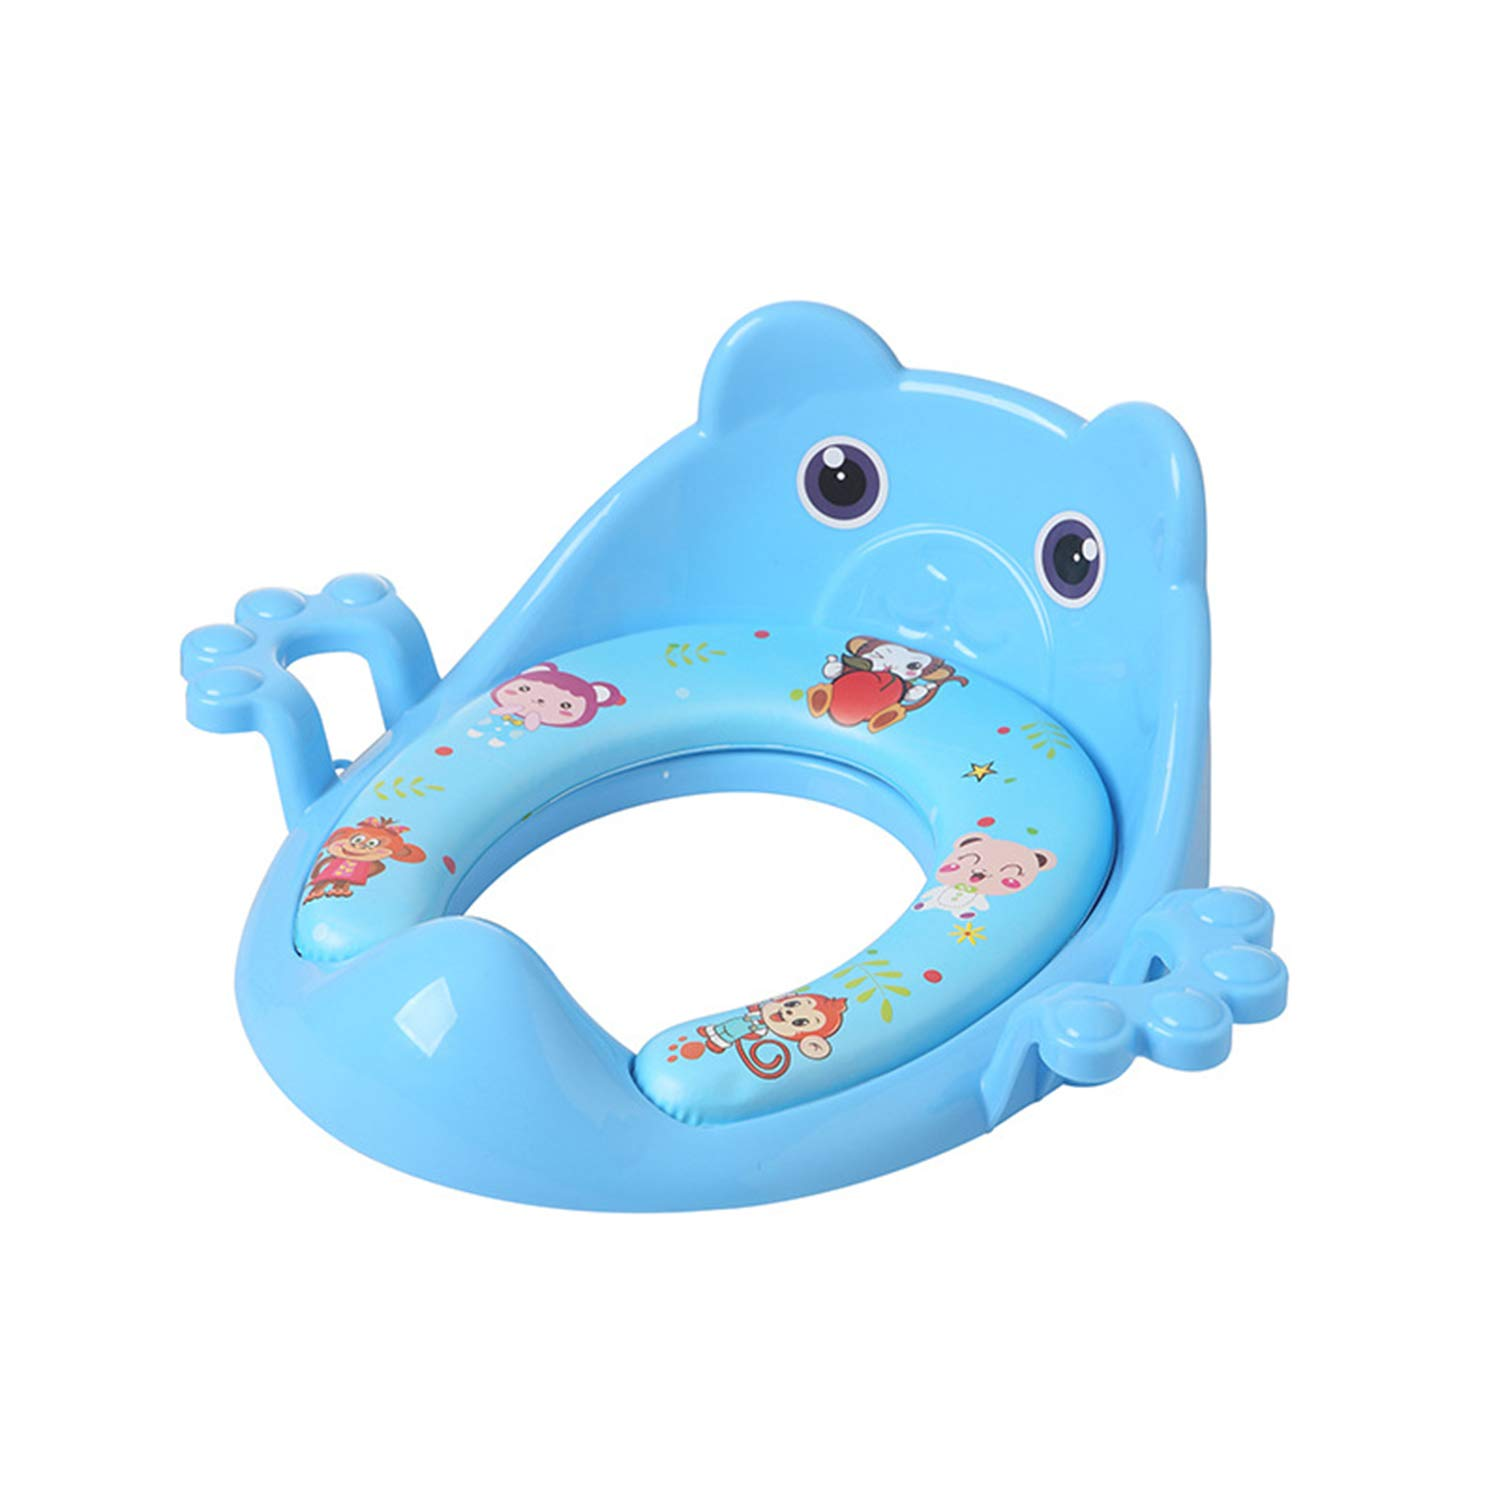 AIBAB Auxiliary Baby Toilet Seat Ring with Armrest Soft Cushion 5 Packs